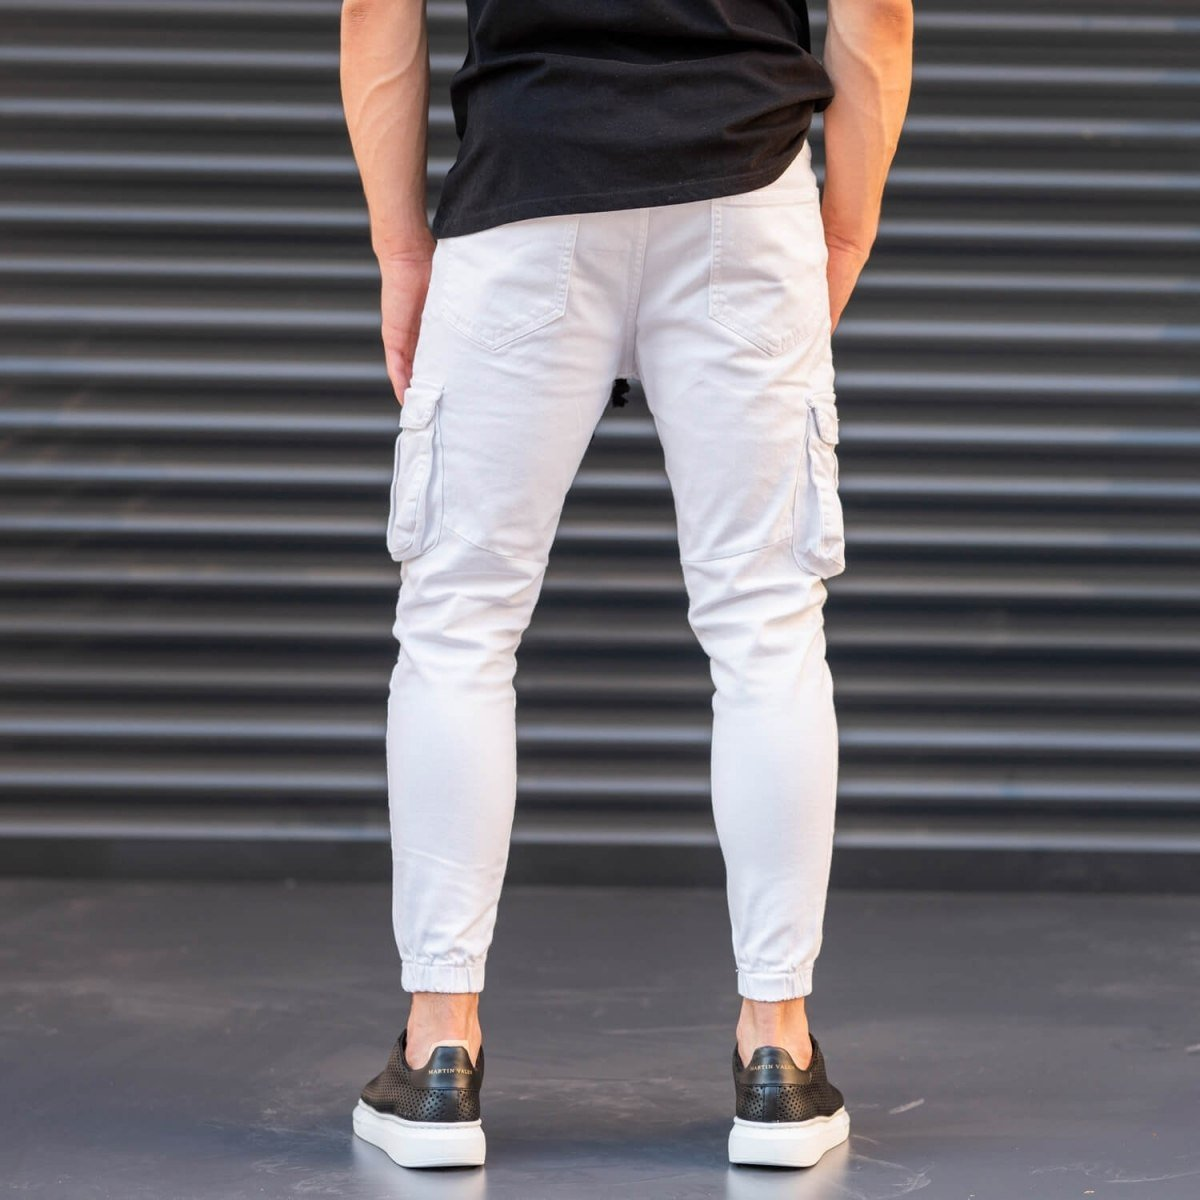 Men's Jeans with Pockets Style in White Mv Premium Brand - 5